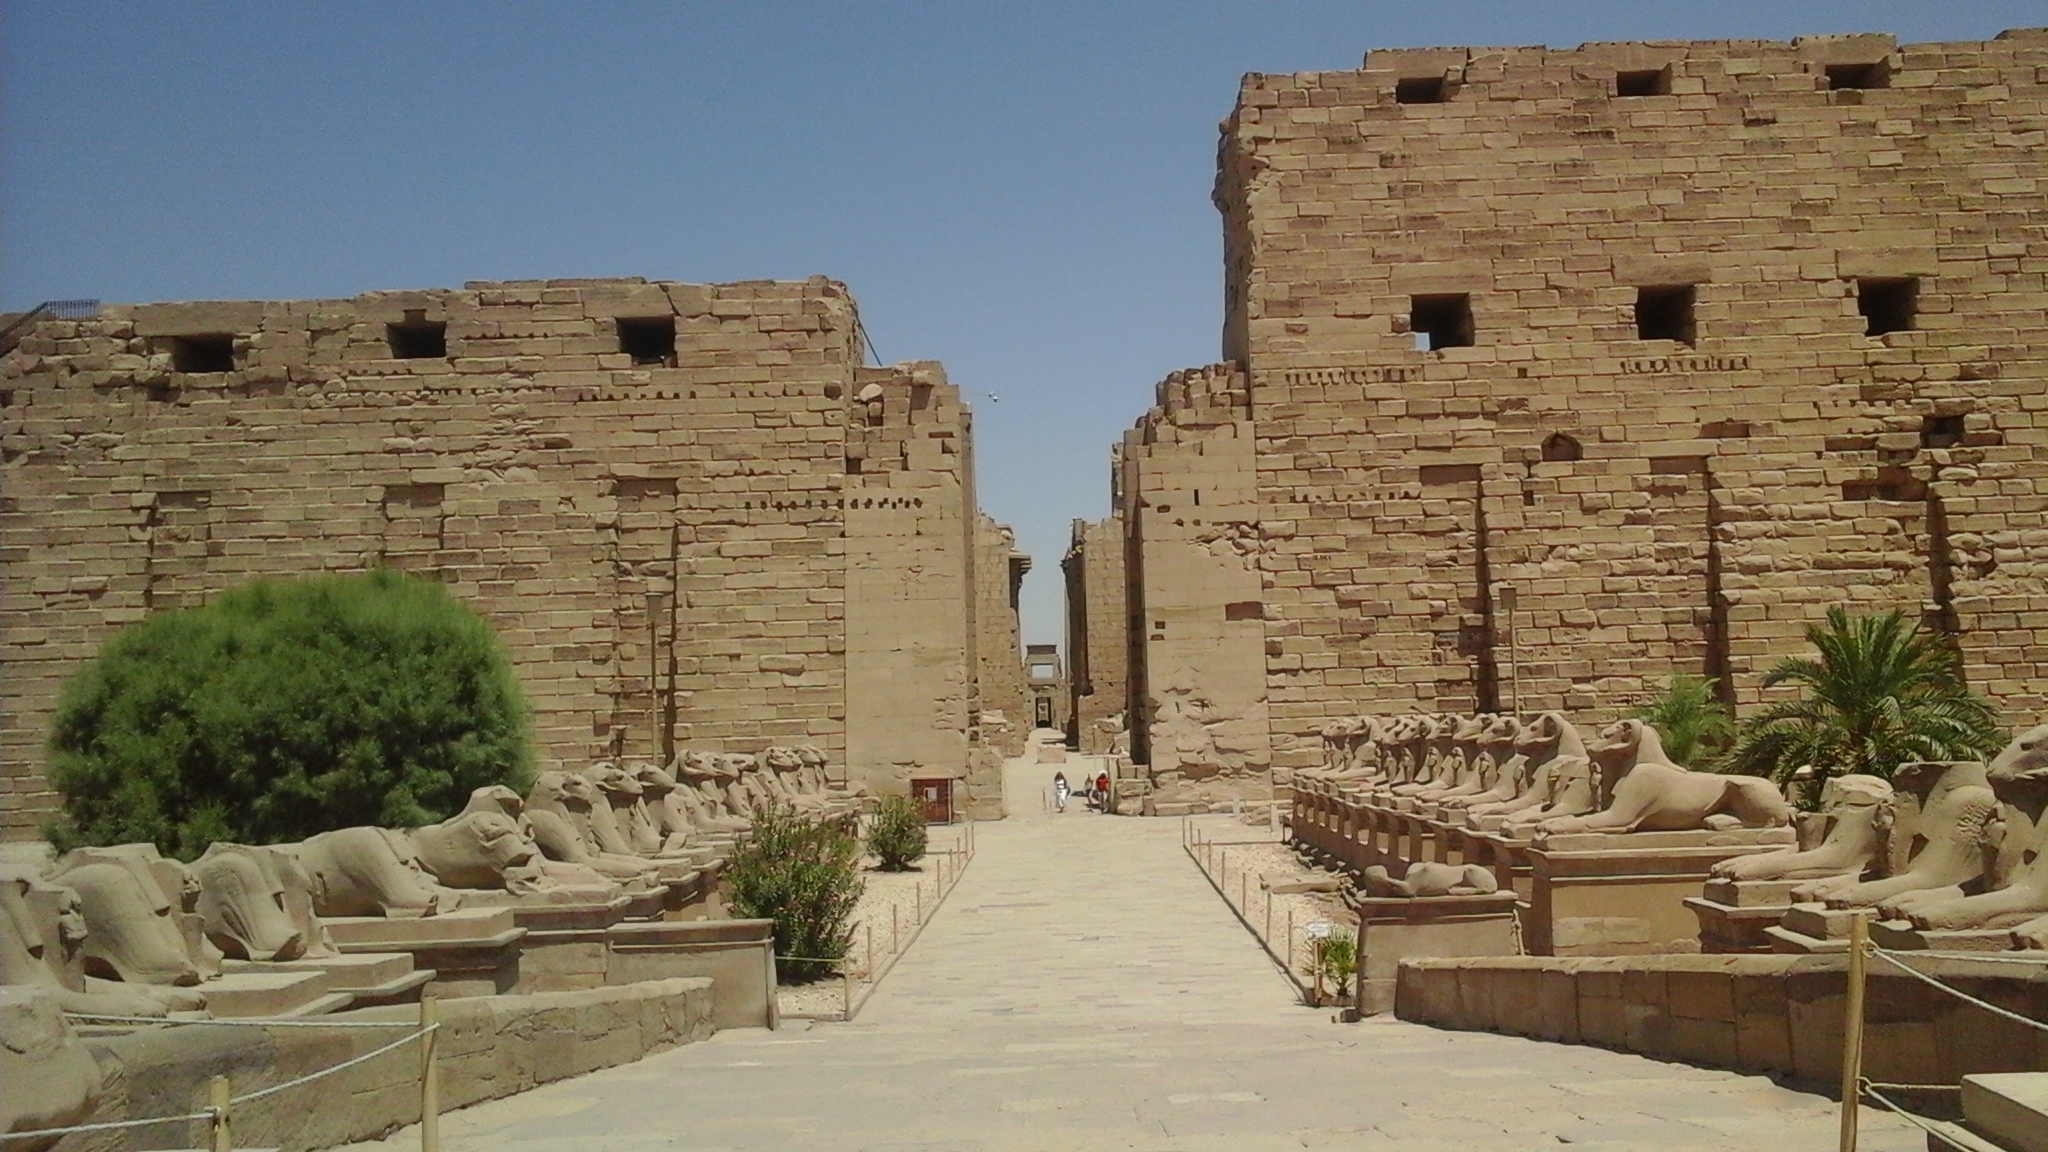 The first pylon in the temple of Karnak